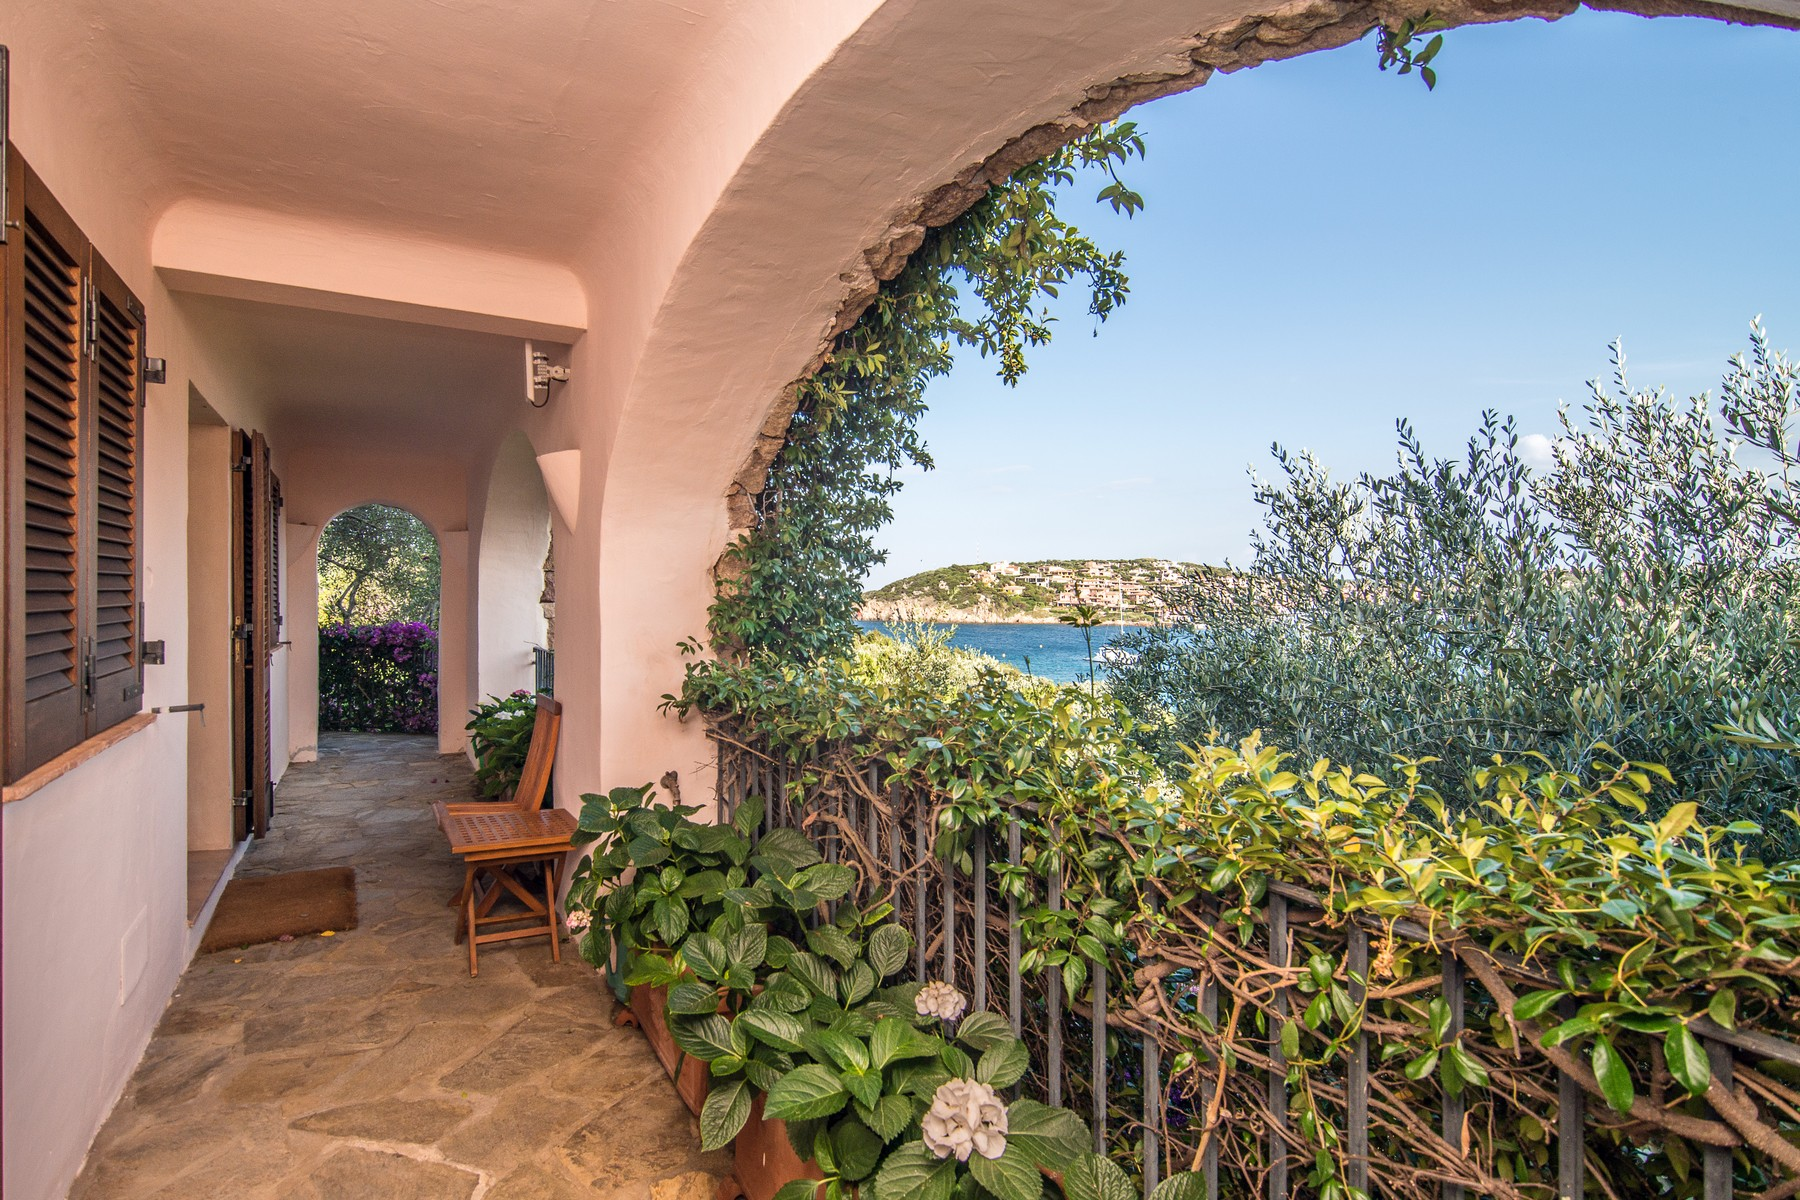 Additional photo for property listing at Majestic Waterfront Estate Porto Cervo Marina Costa Smeralda Porto Cervo, Olbia Tempio 07021 Italia